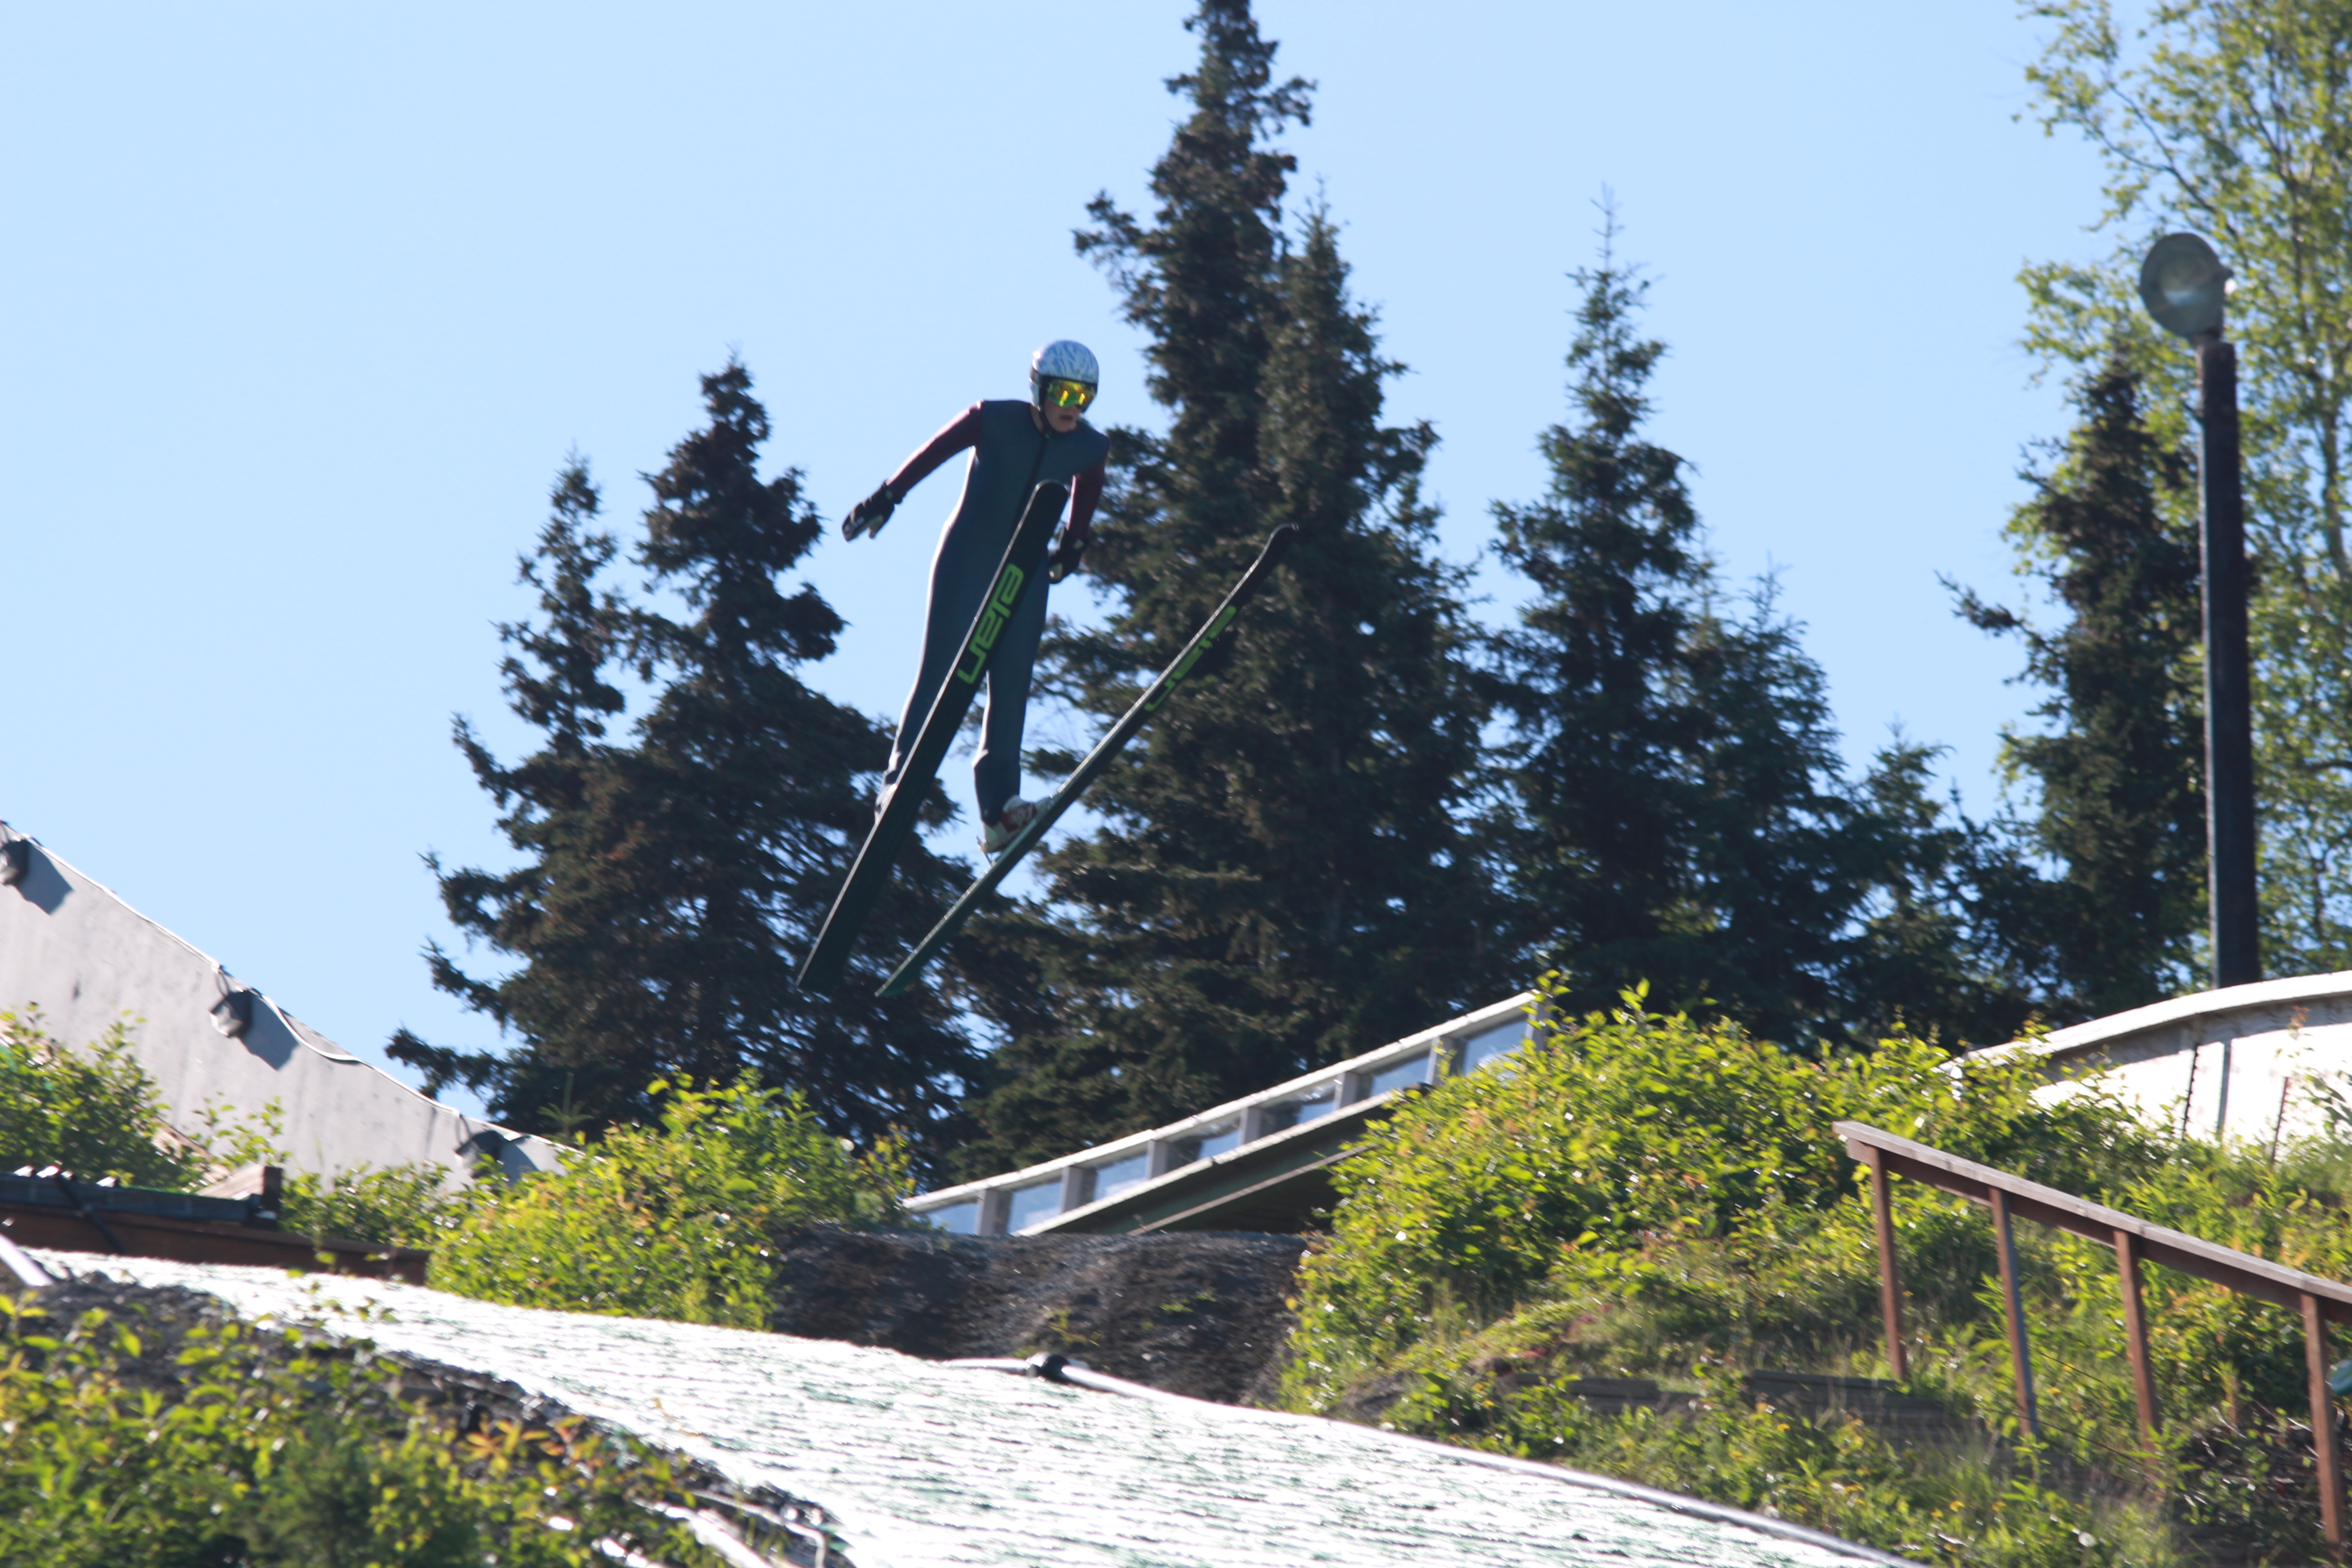 One of the skiers flies off the 40 meter ski jump. (Photo by Wesley Early, Alaska Public Media - Anchorage)